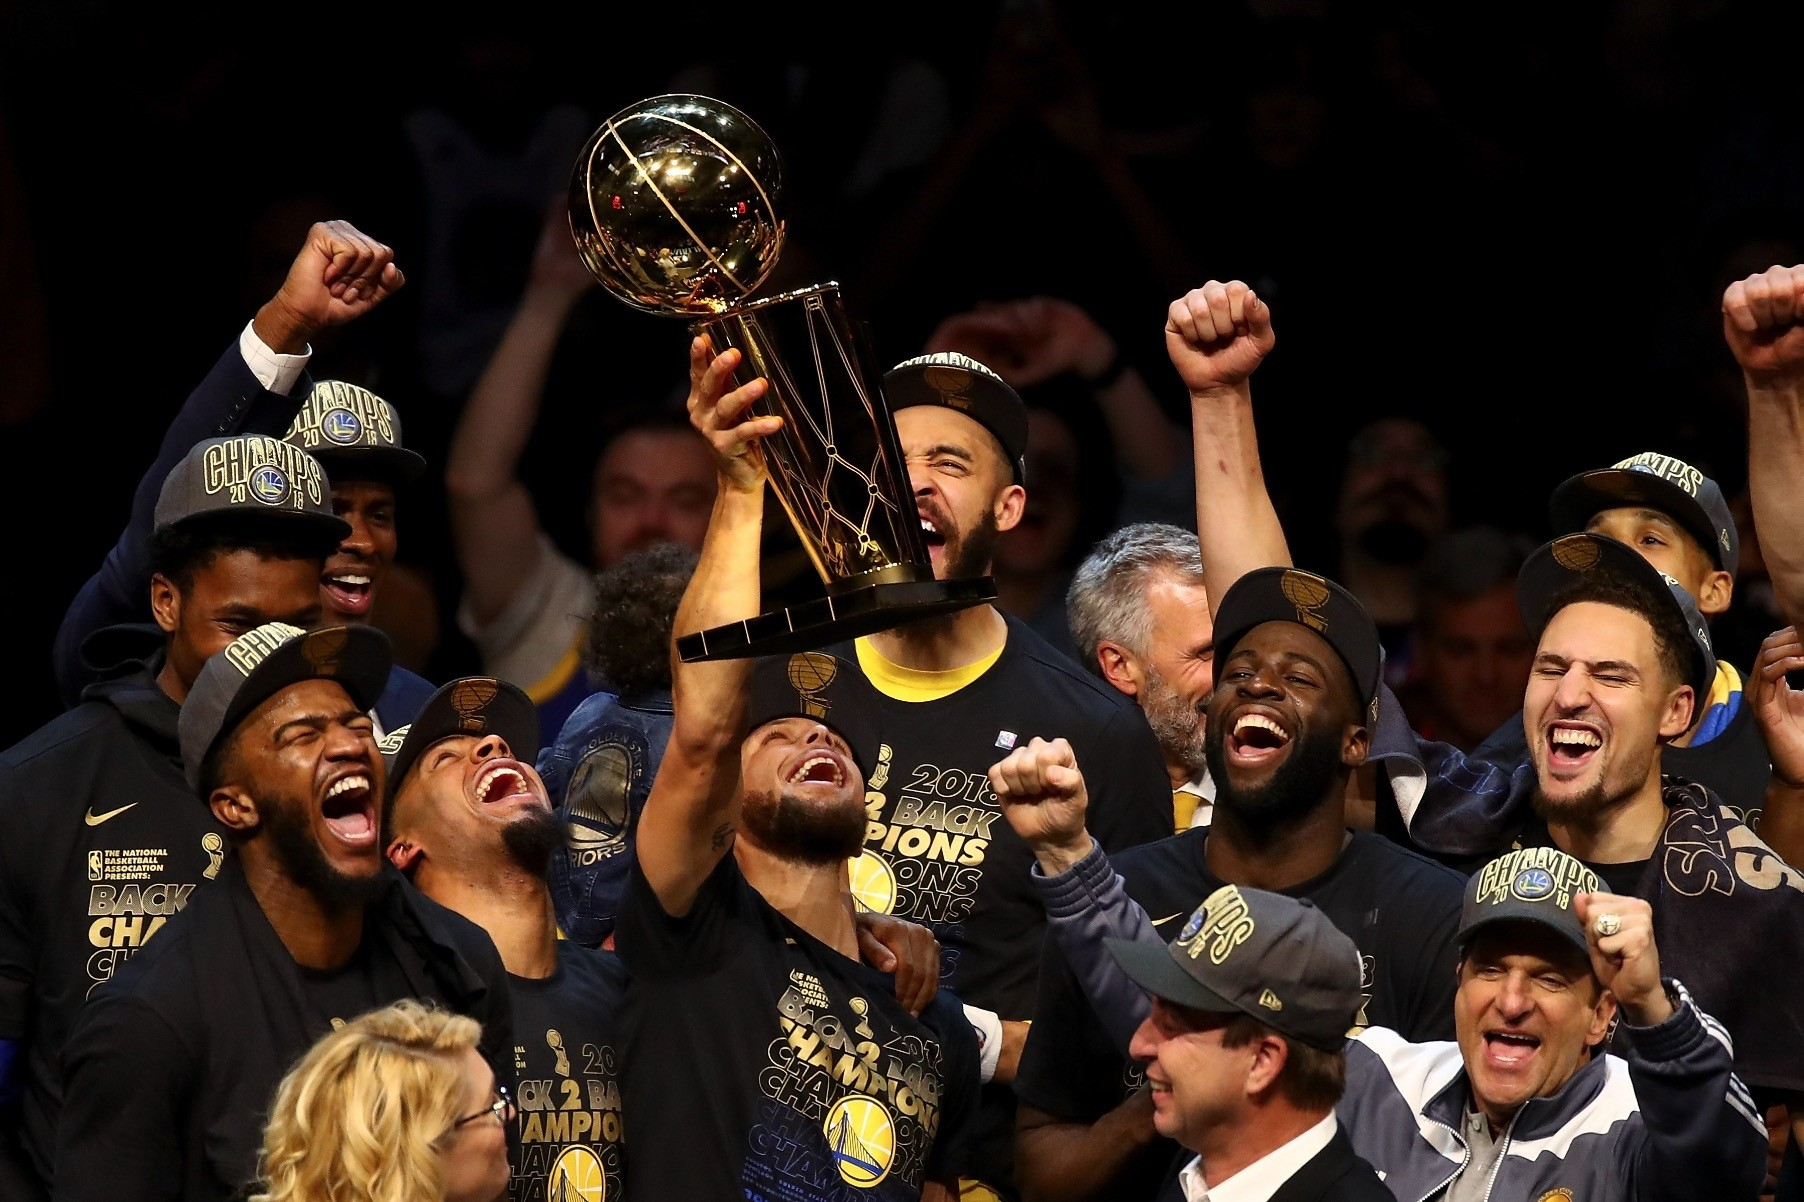 The Golden State Warriors celebrate with the Larry Ou2019Brien Trophy after defeating the Cleveland Cavaliers in Game 4 of the 2018 NBA Finals at Quicken Loans Arena  June 8 in Cleveland.